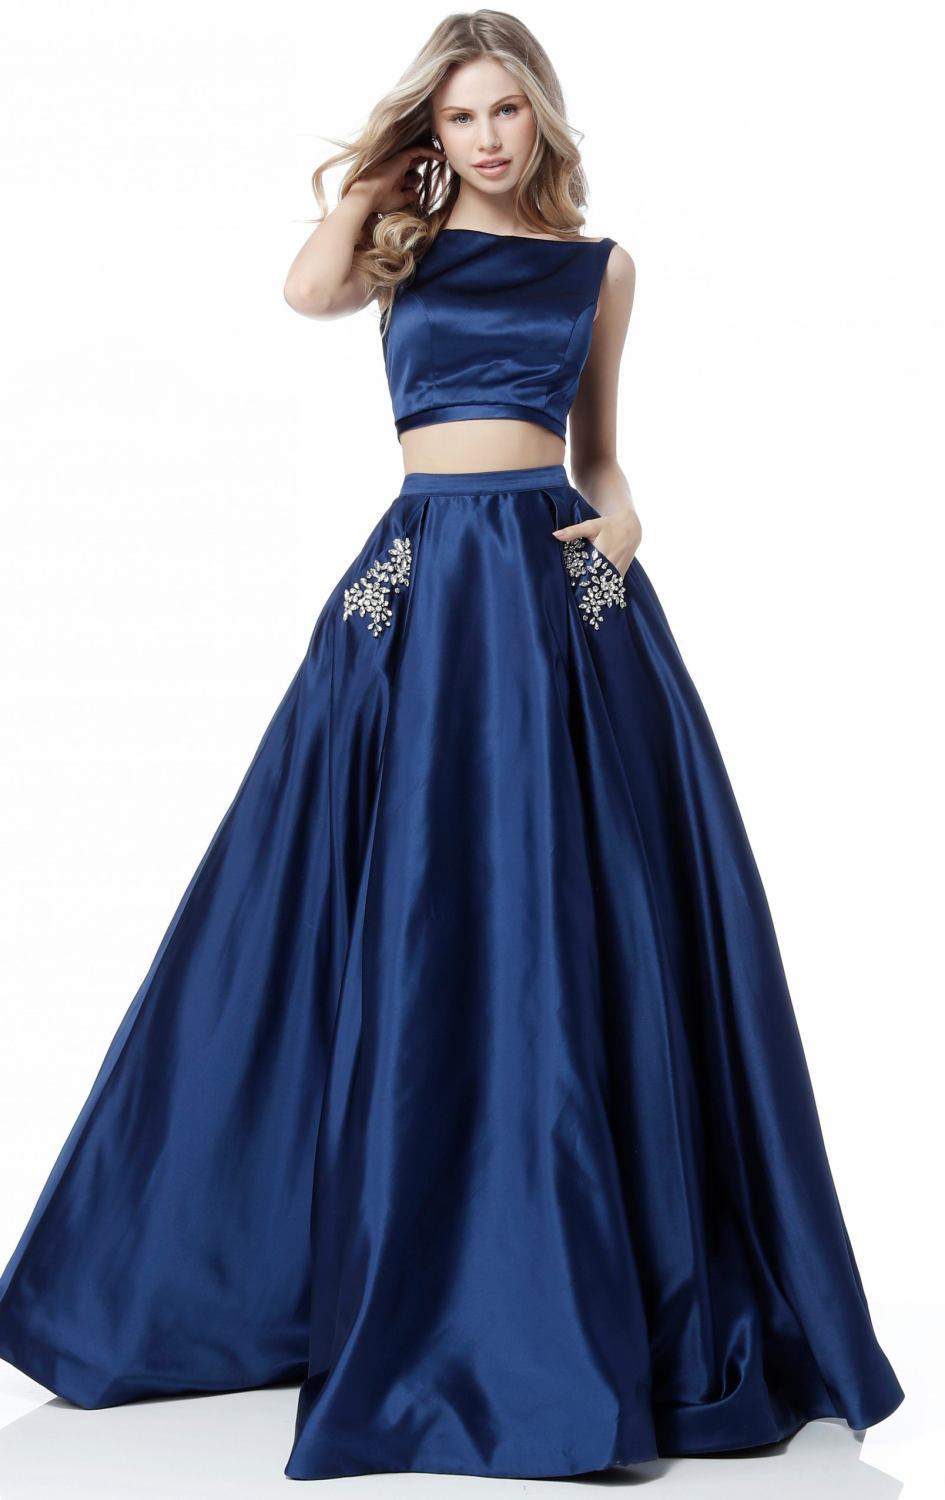 f9c9006aeb0 Navy Blue Quinceanera Dresses 2018 - Data Dynamic AG